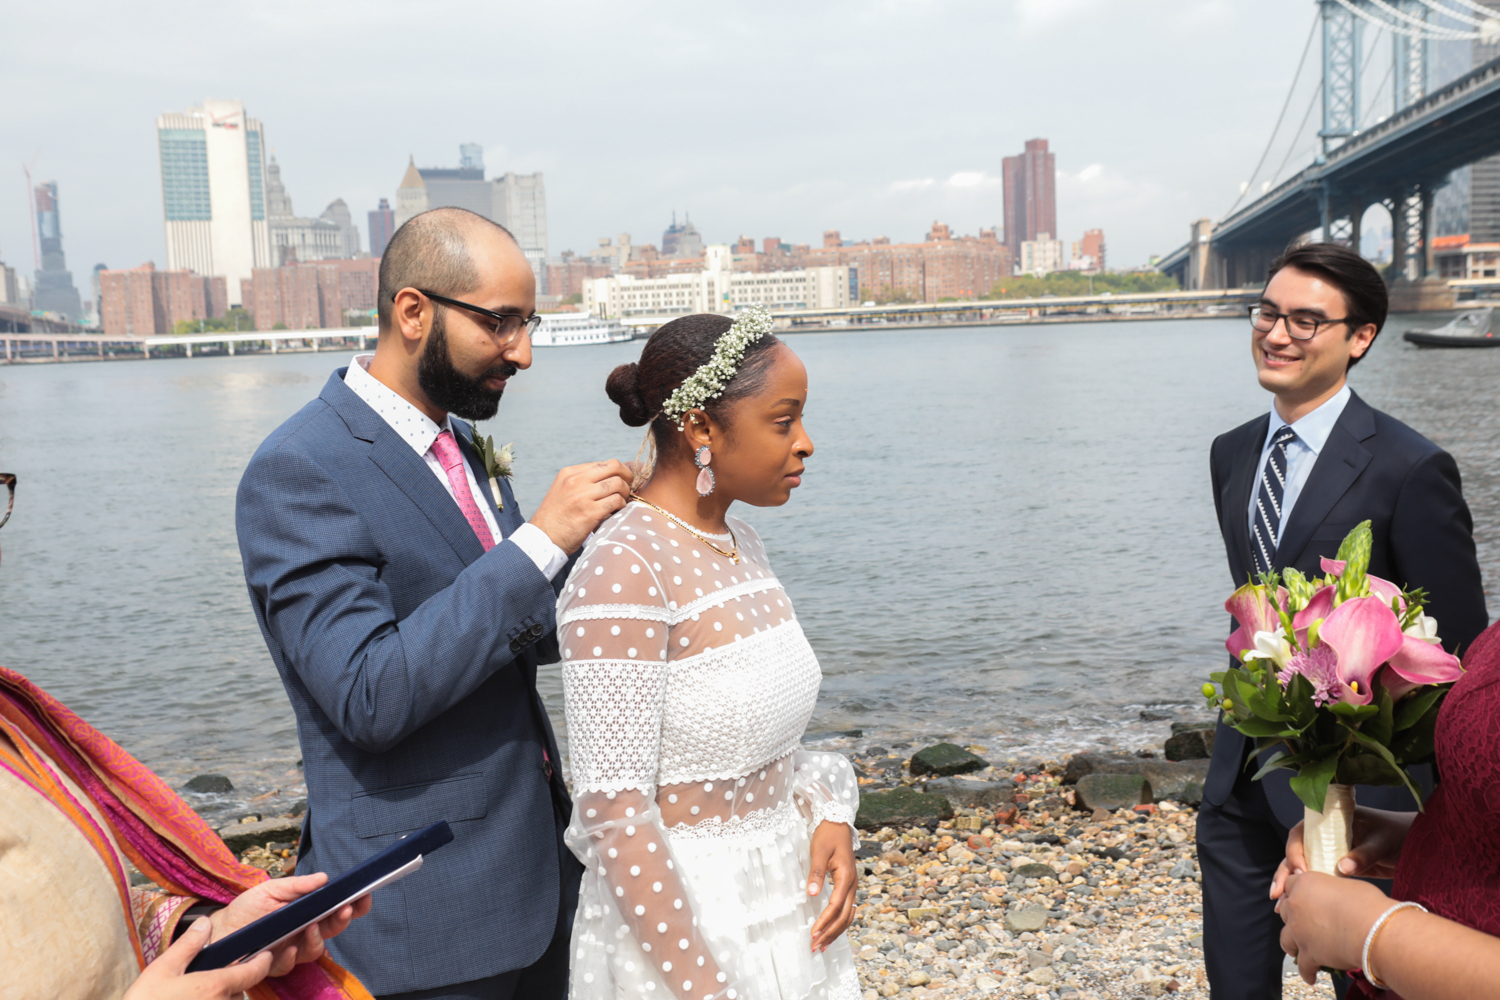 The groom places a necklace on the bride in a Brooklyn Bridge Park Wedding Ceremony